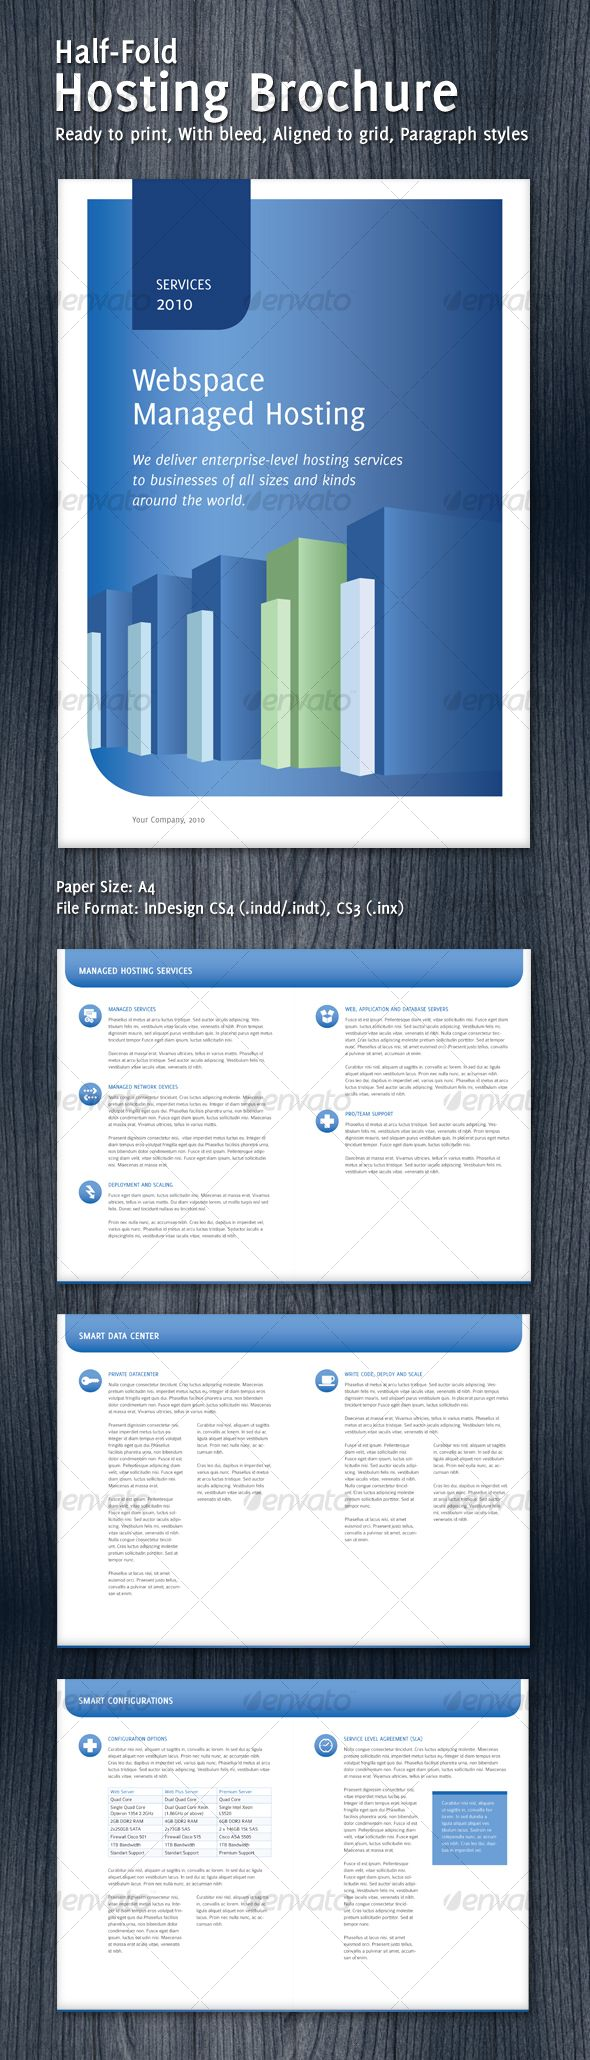 half fold hosting brochure corporate brochure template indesign indd